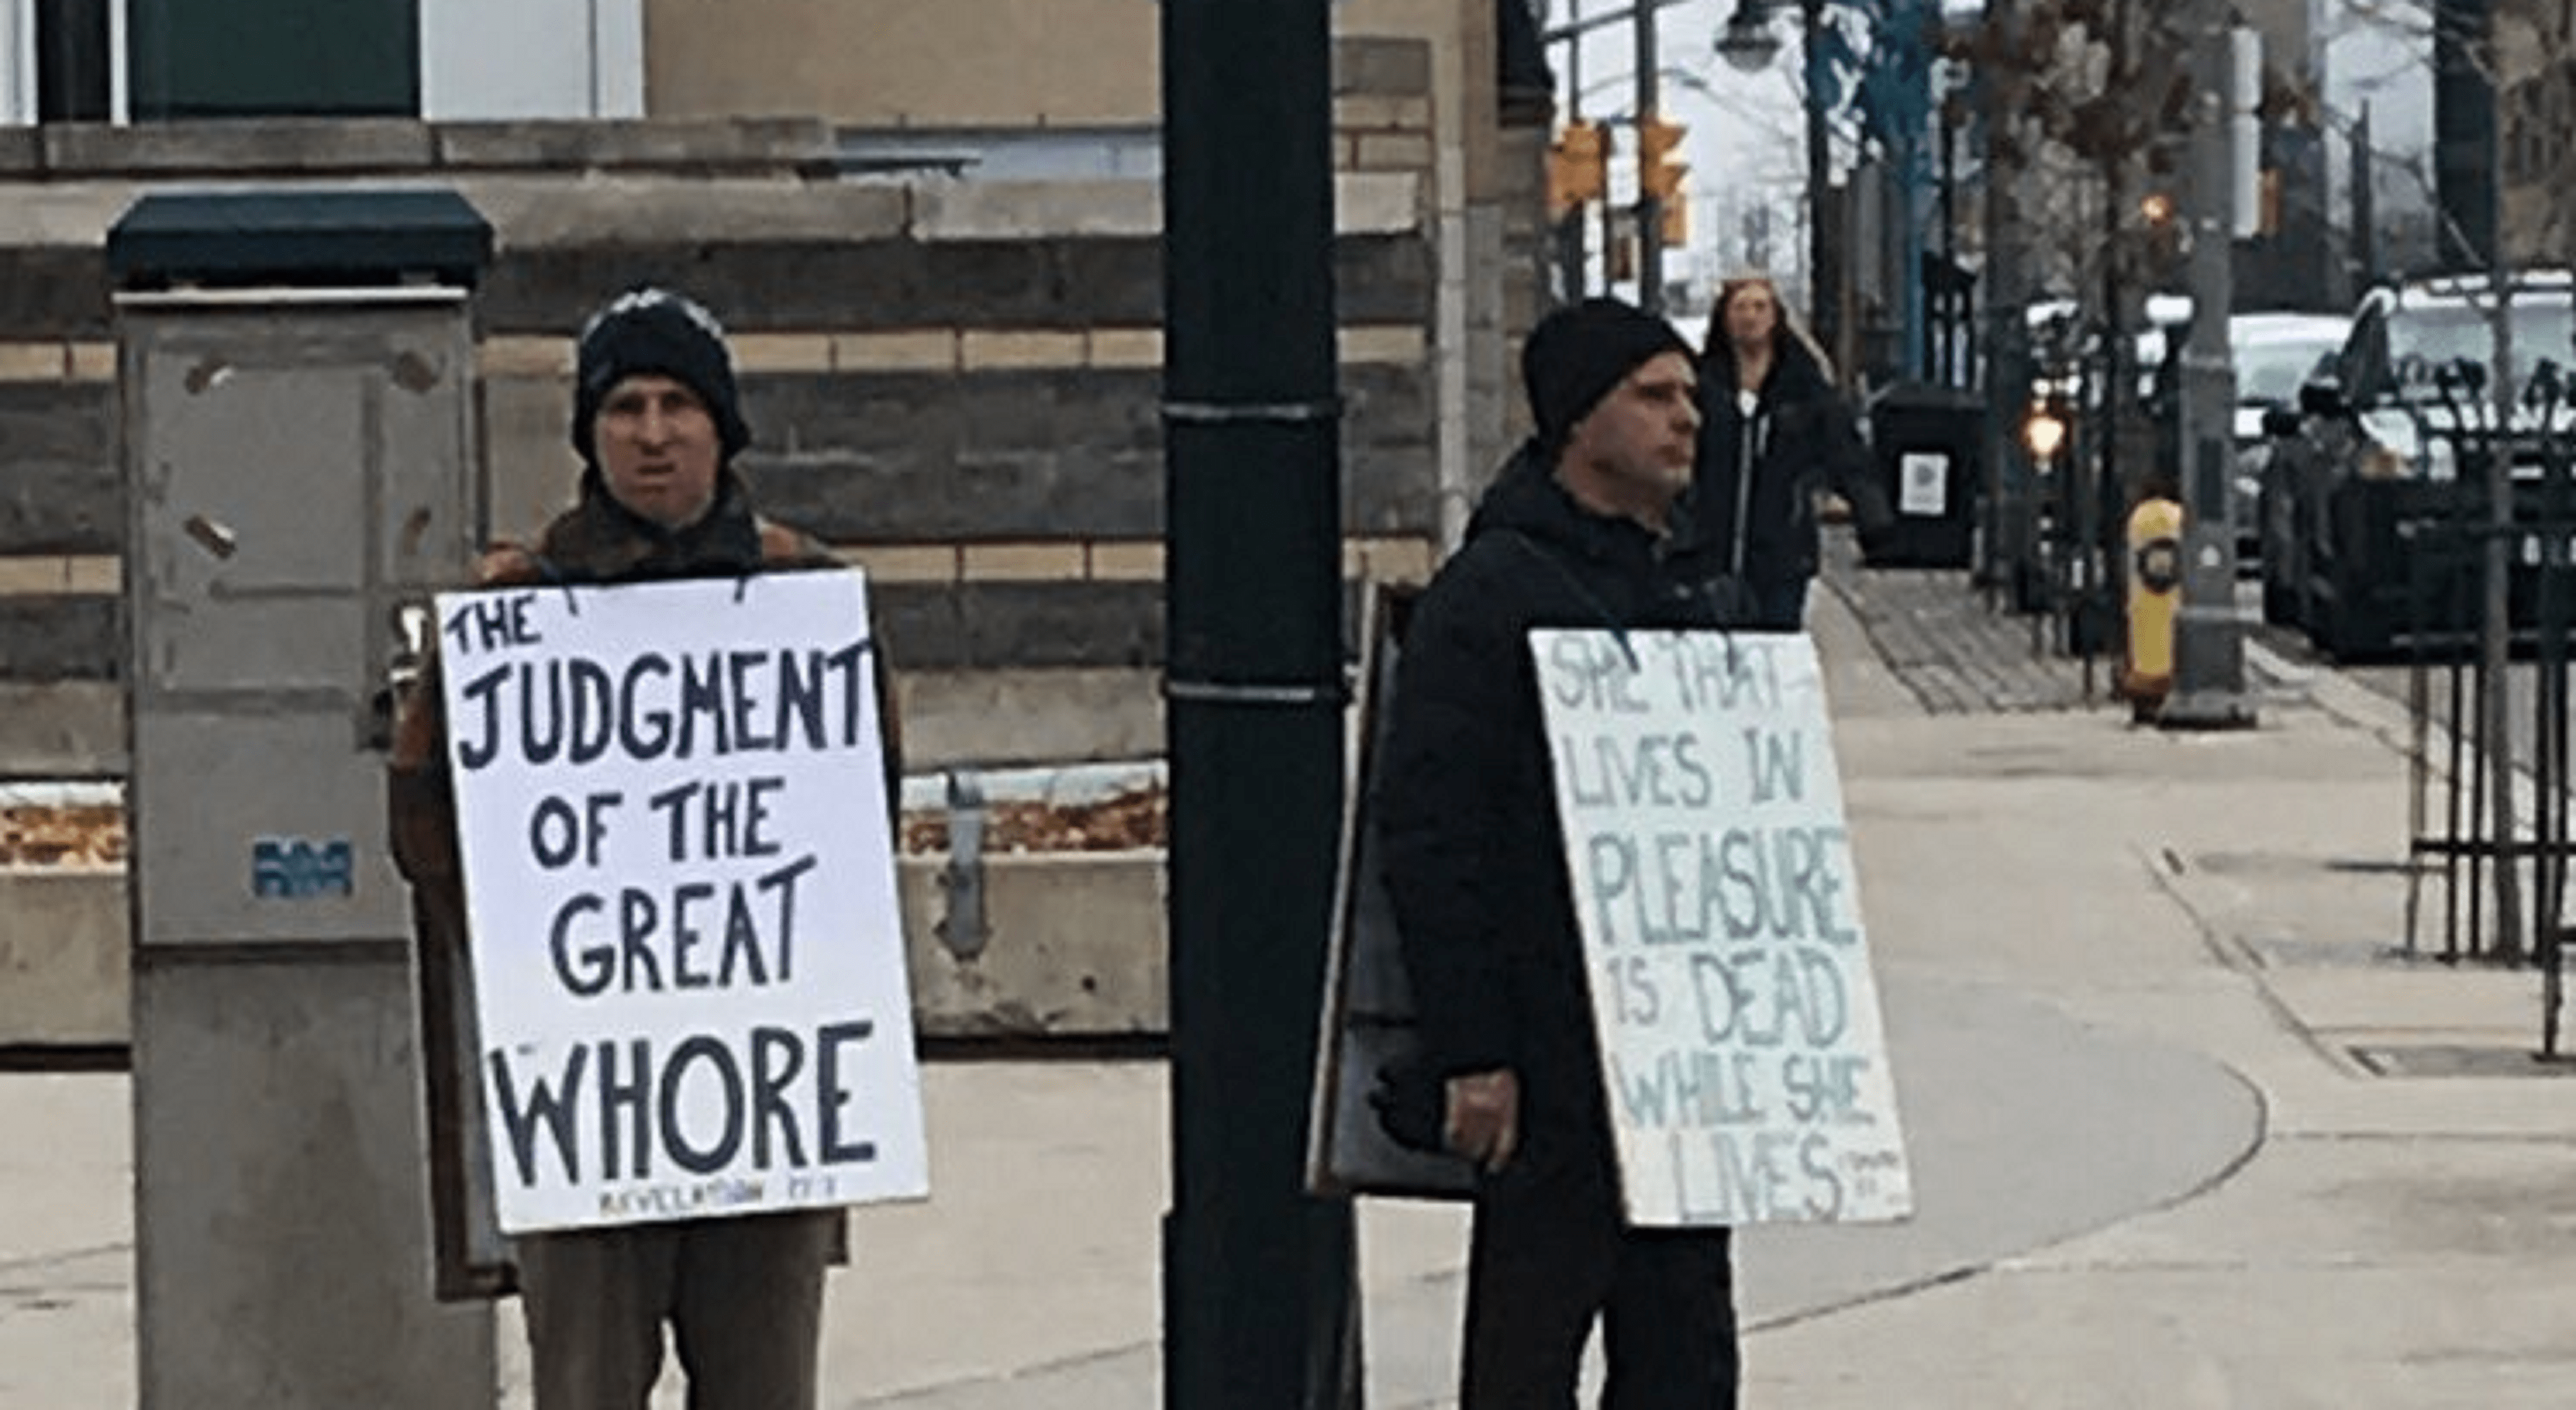 Two men wearing sandwich-board style signs are being investigated by Waterloo Regional Police. The signs had quotes from The Bible on them.